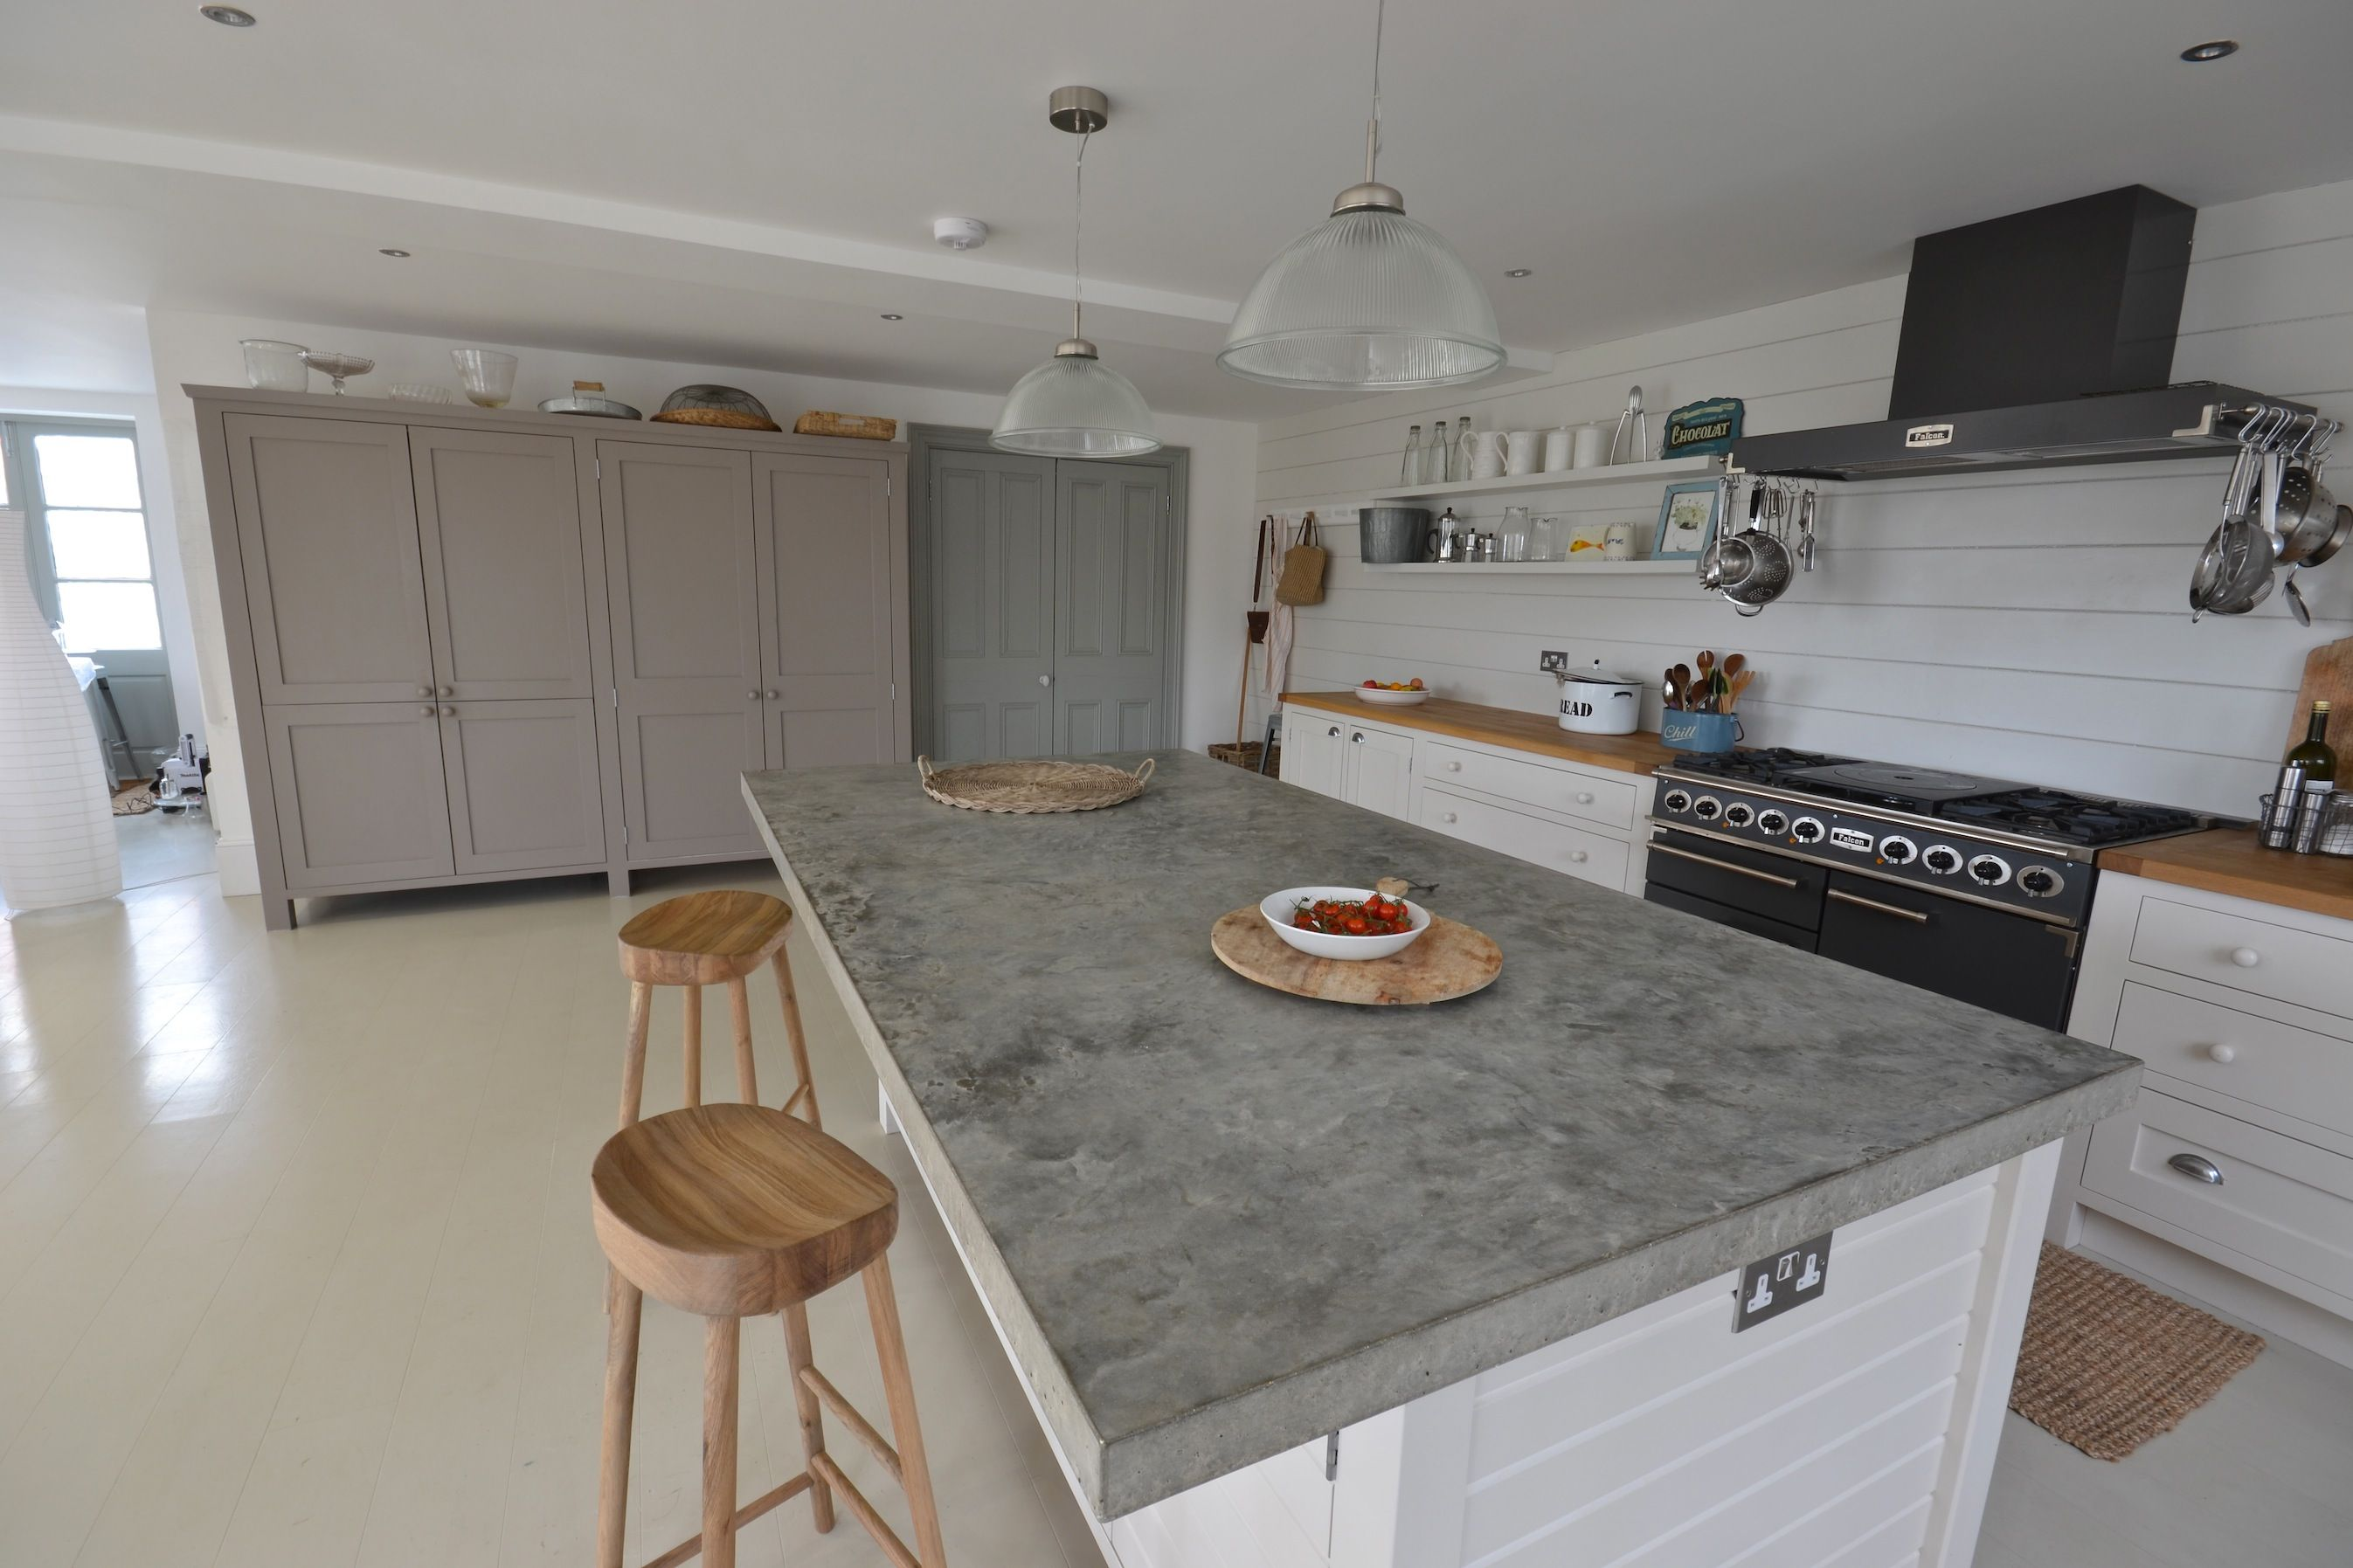 hand trowelled polished concrete worktop with sloped drainer and